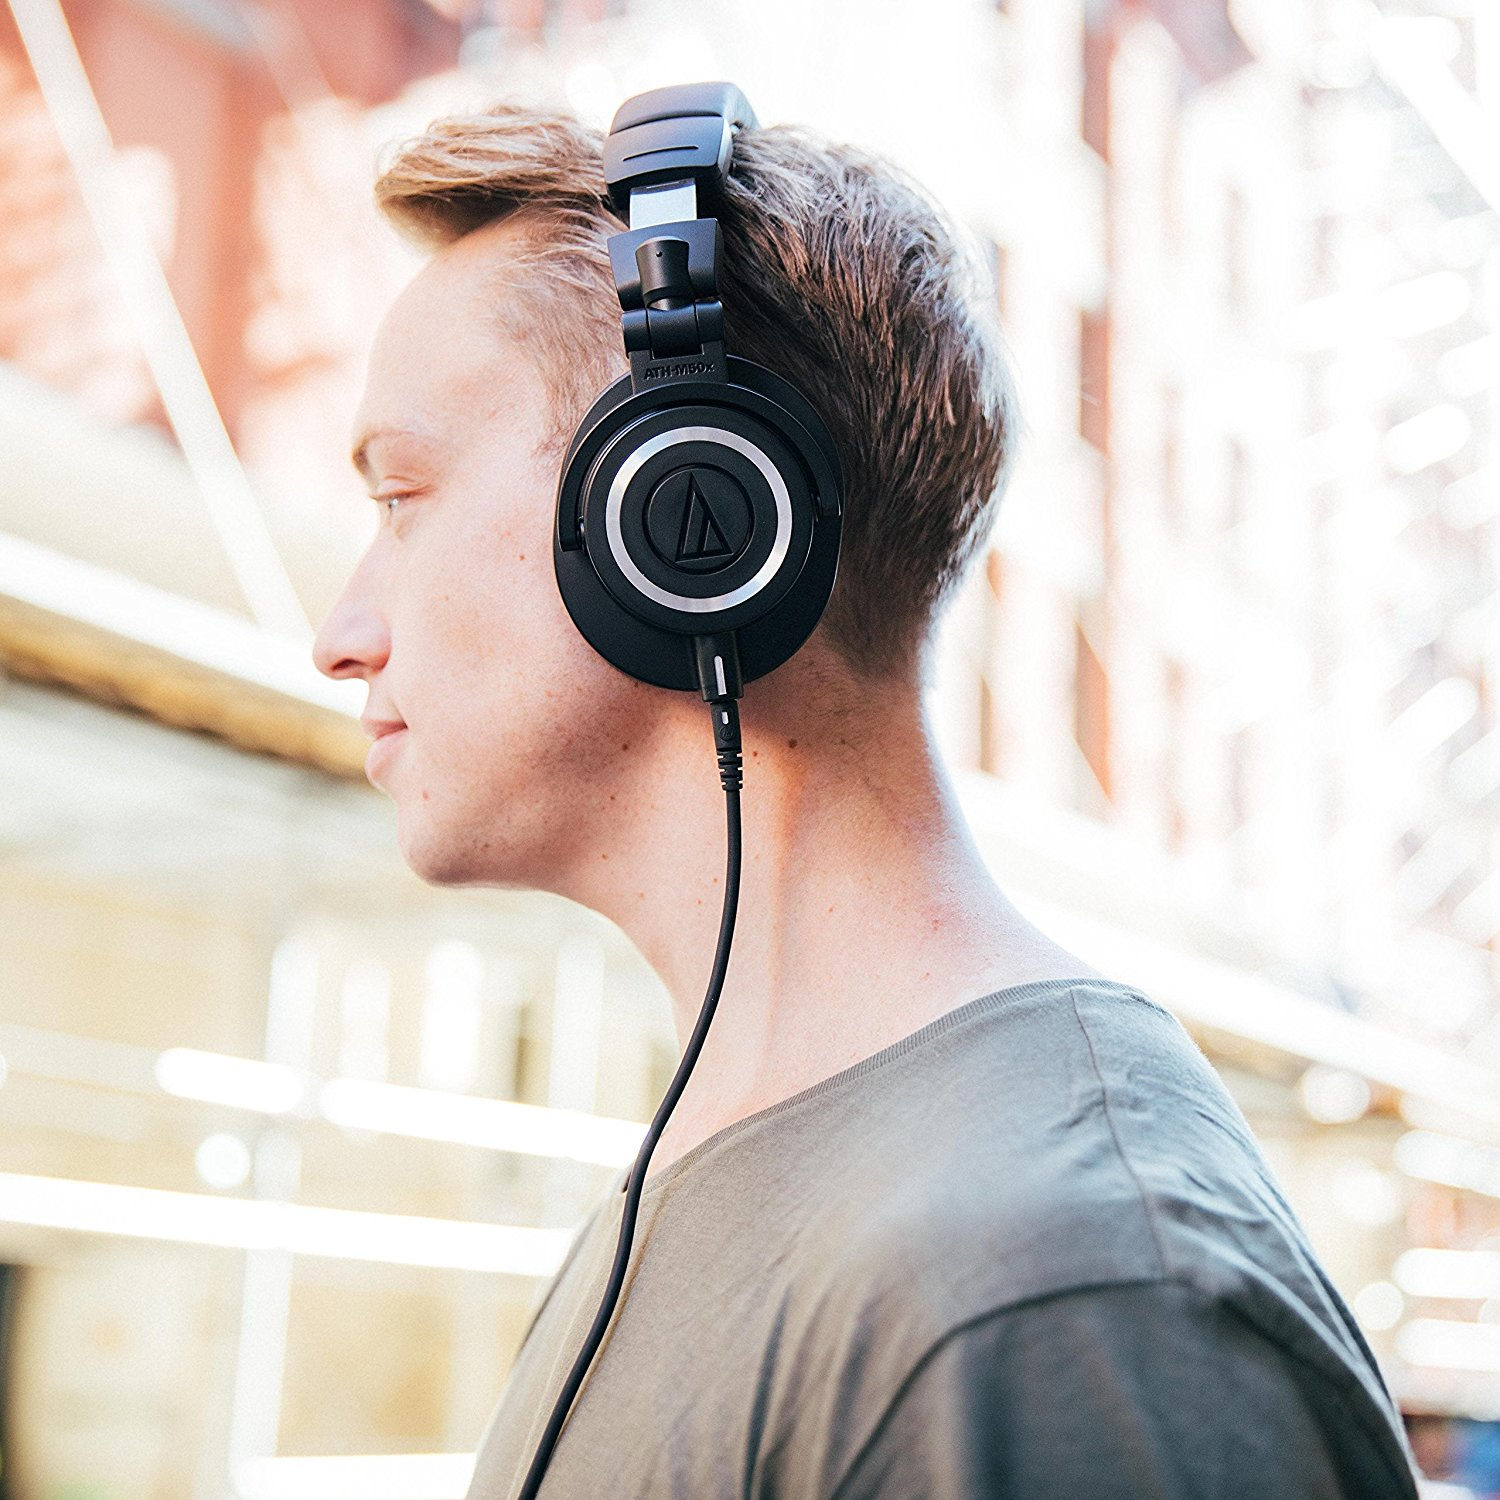 Audio Technica Ath M20 Vs 30 40 50x Which Offers The Best Value M20x Black All Four Of These Headphones Have Closed Back Circumaural Pads That May Sound Complicated But What It Really Means Is Quite Simple